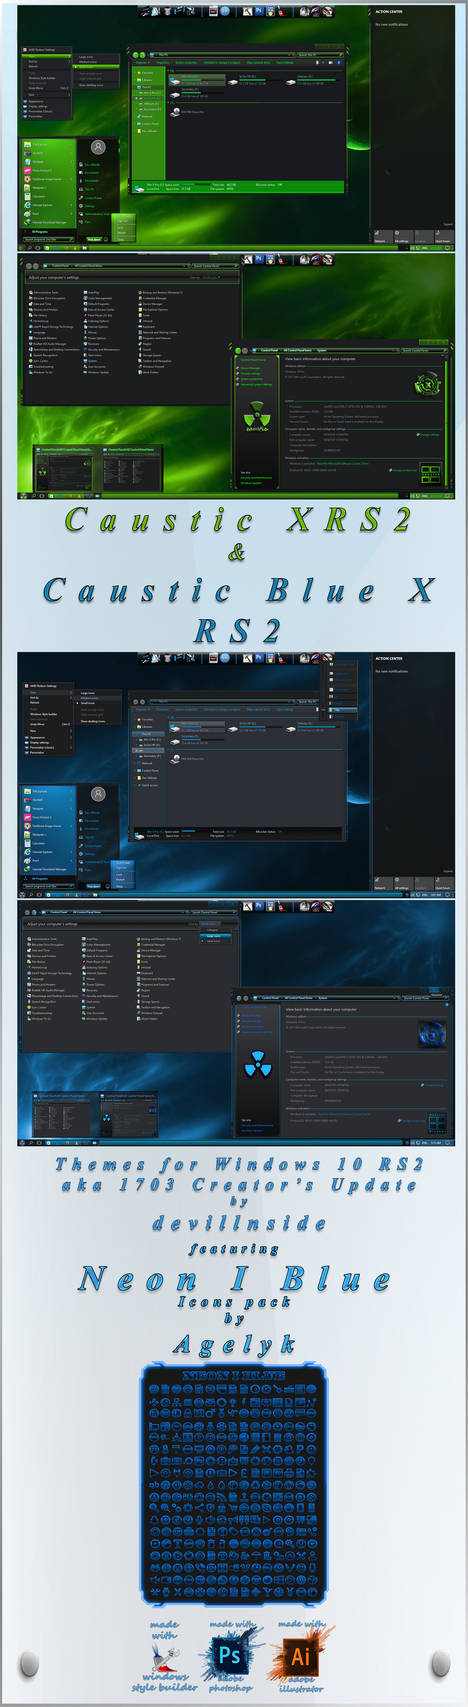 Caustic Series.... Caustic XRS2+Caustic Blue X RS2 For Windows 10